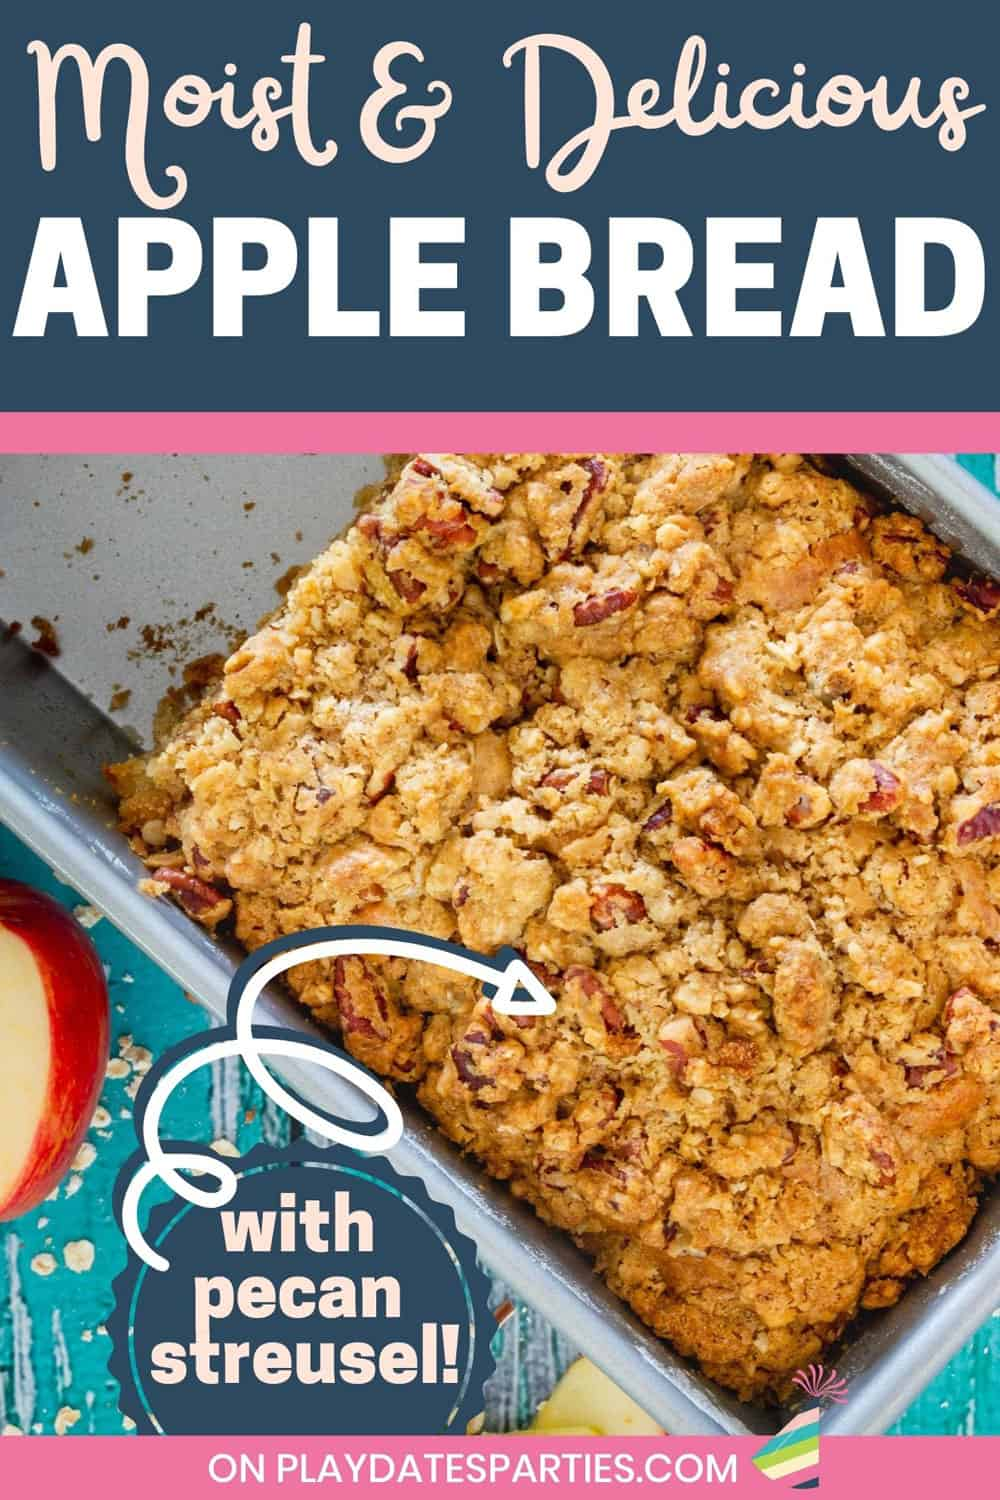 overhead image of a loaf of quick bread with text overlay moist and delicious apple bread with pecan streusel